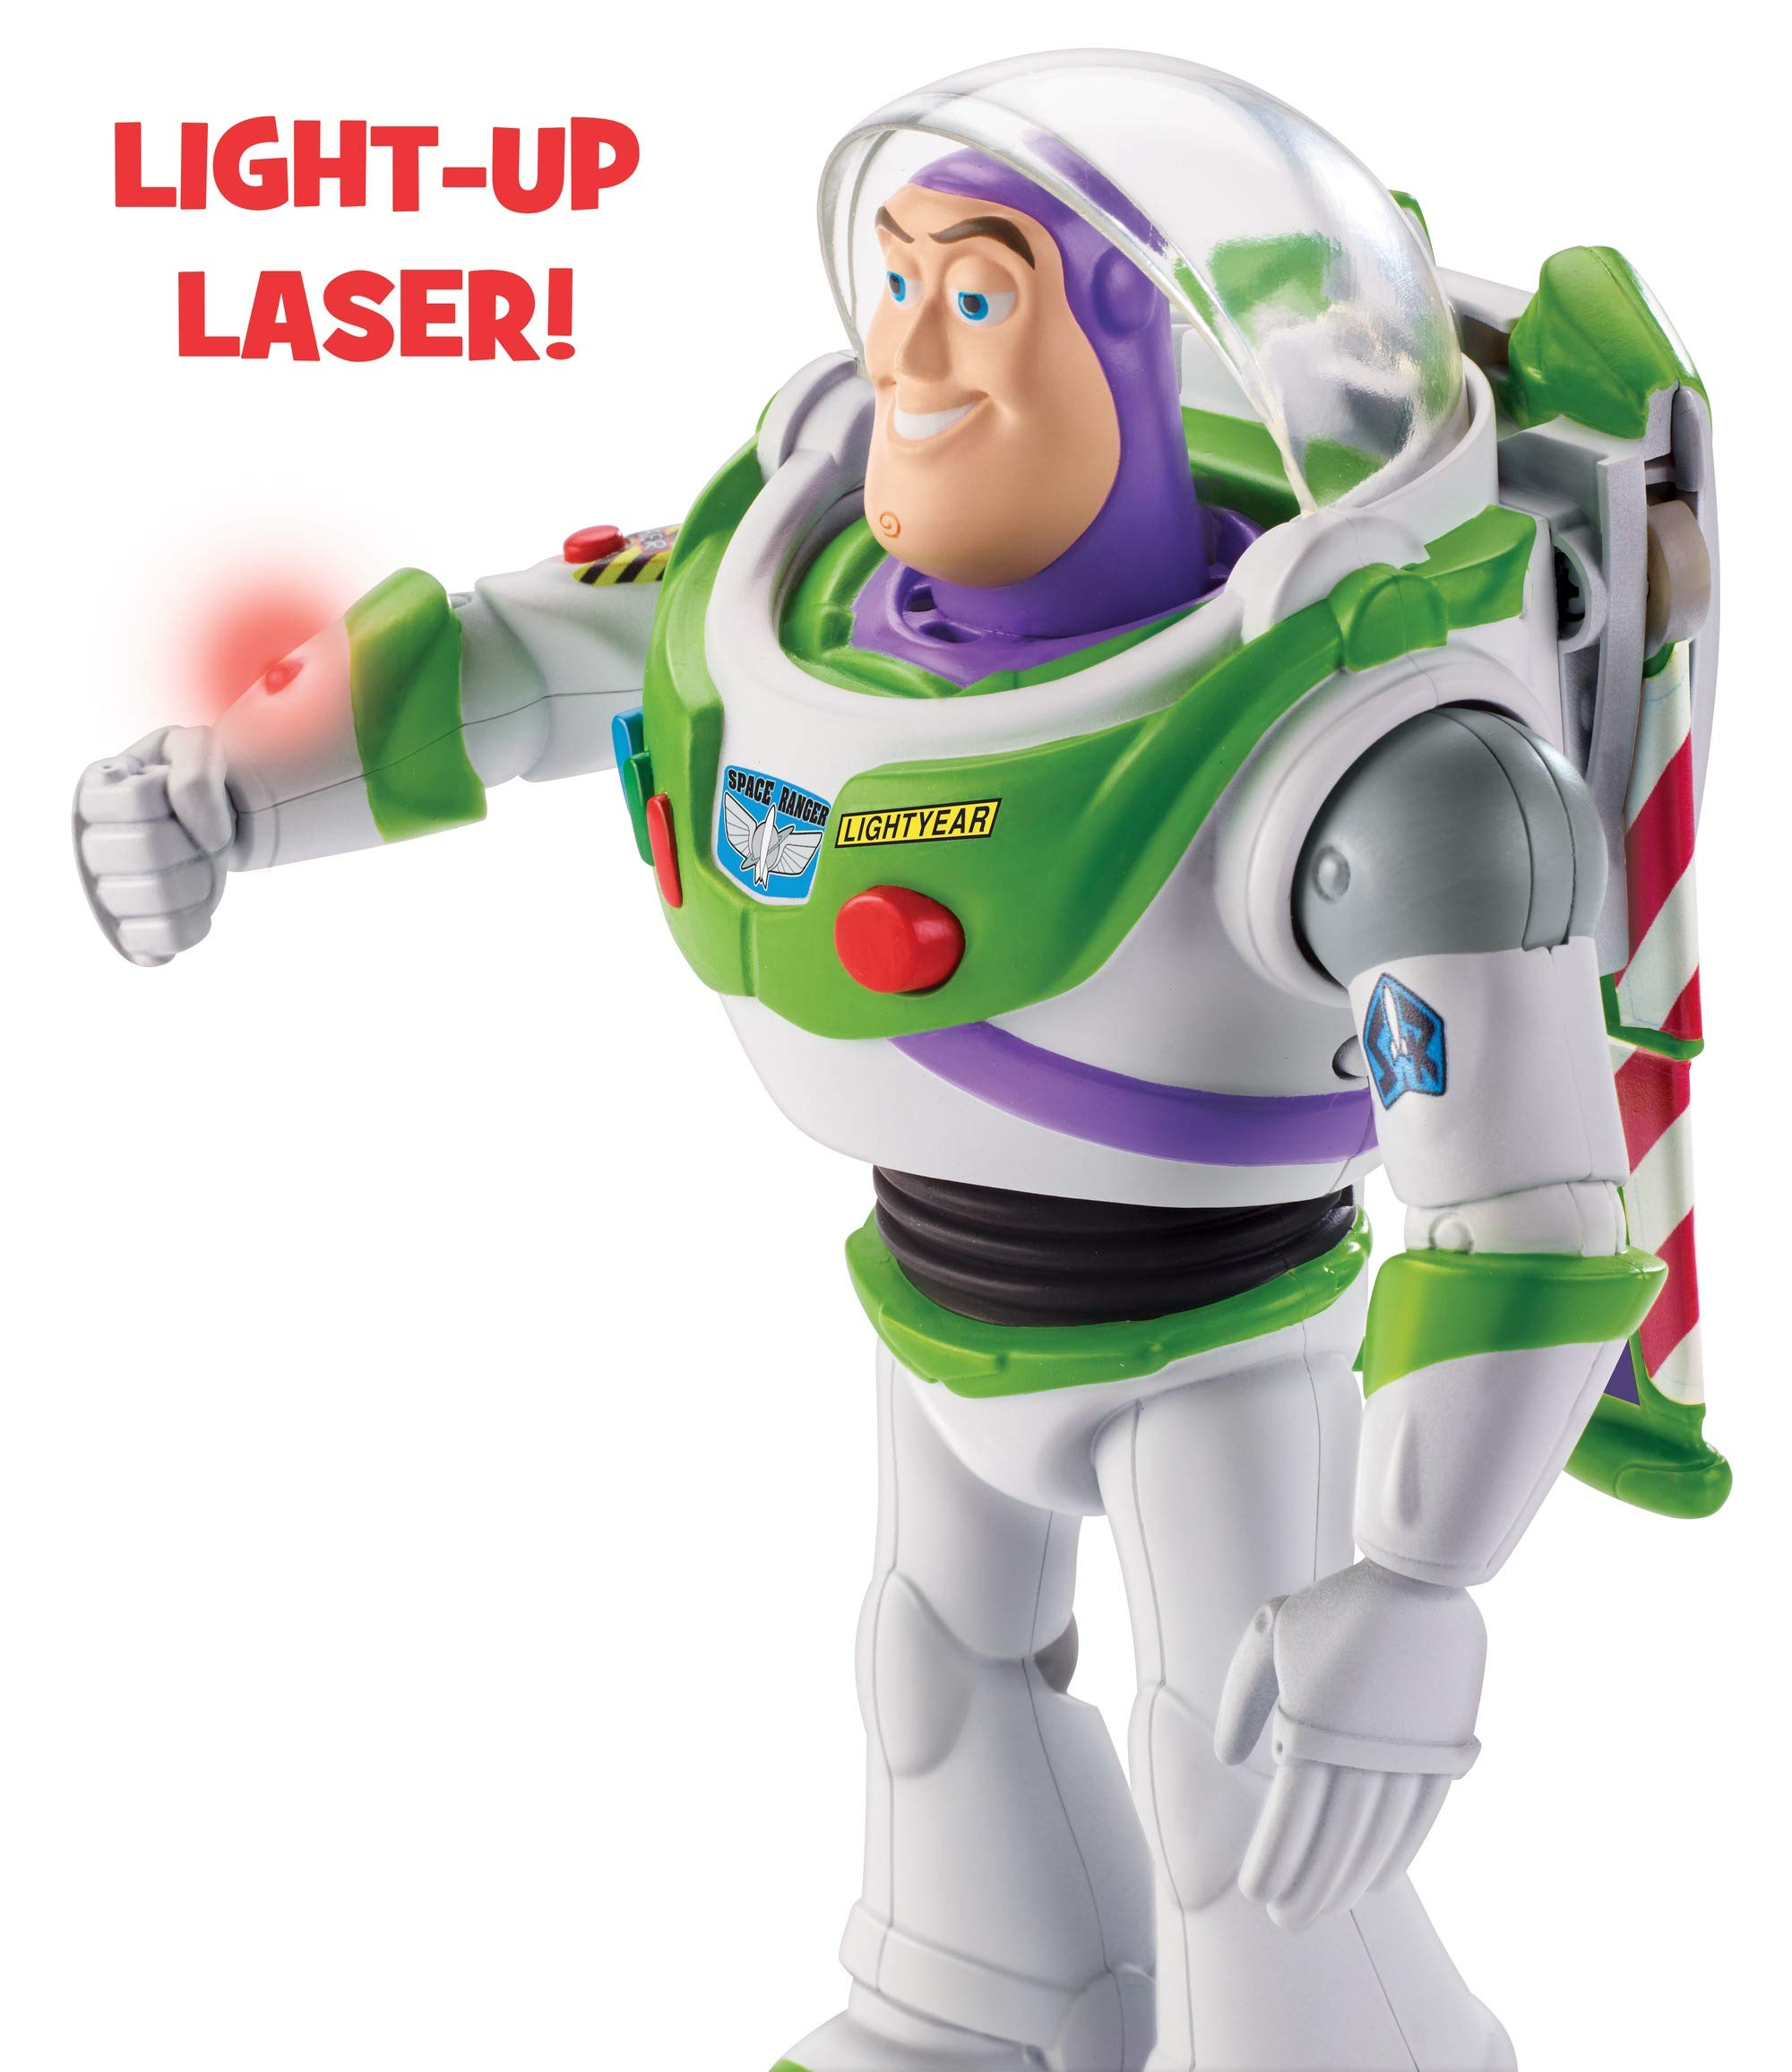 Disney Pixar Toy Story Ultimate Walking Buzz Lightyear, 7'' by Toy Story (Image #4)